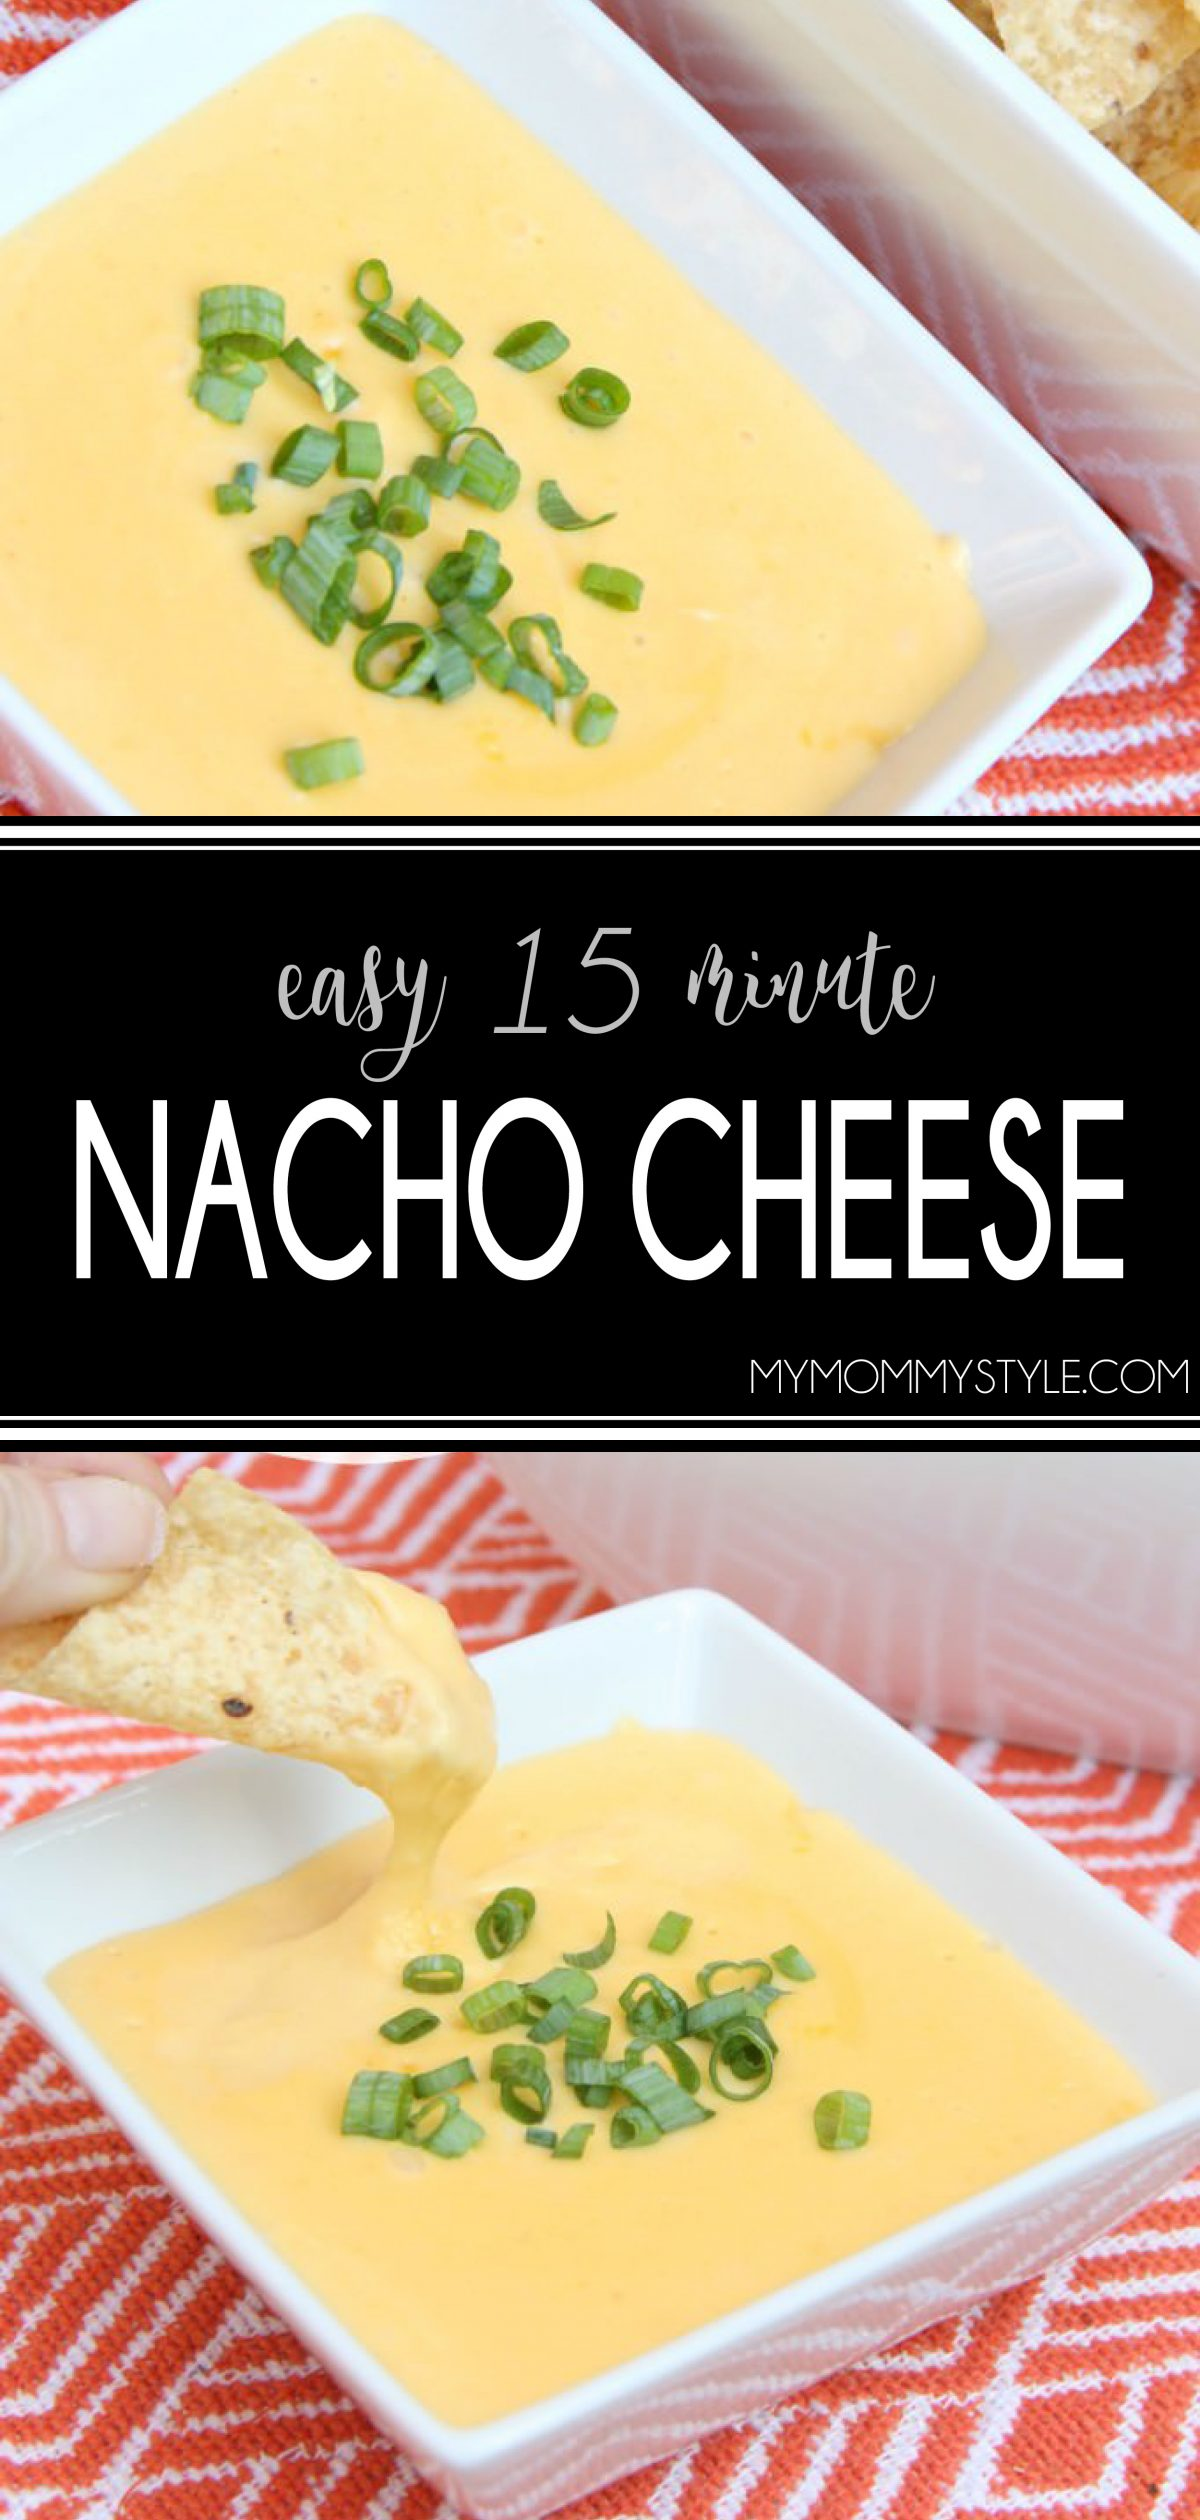 Homemade Nacho Cheese Sauce is fast and delicious made with real cheddar cheese. This creamy smooth dip is the perfect game day and party appetizer. via @mymommystyle